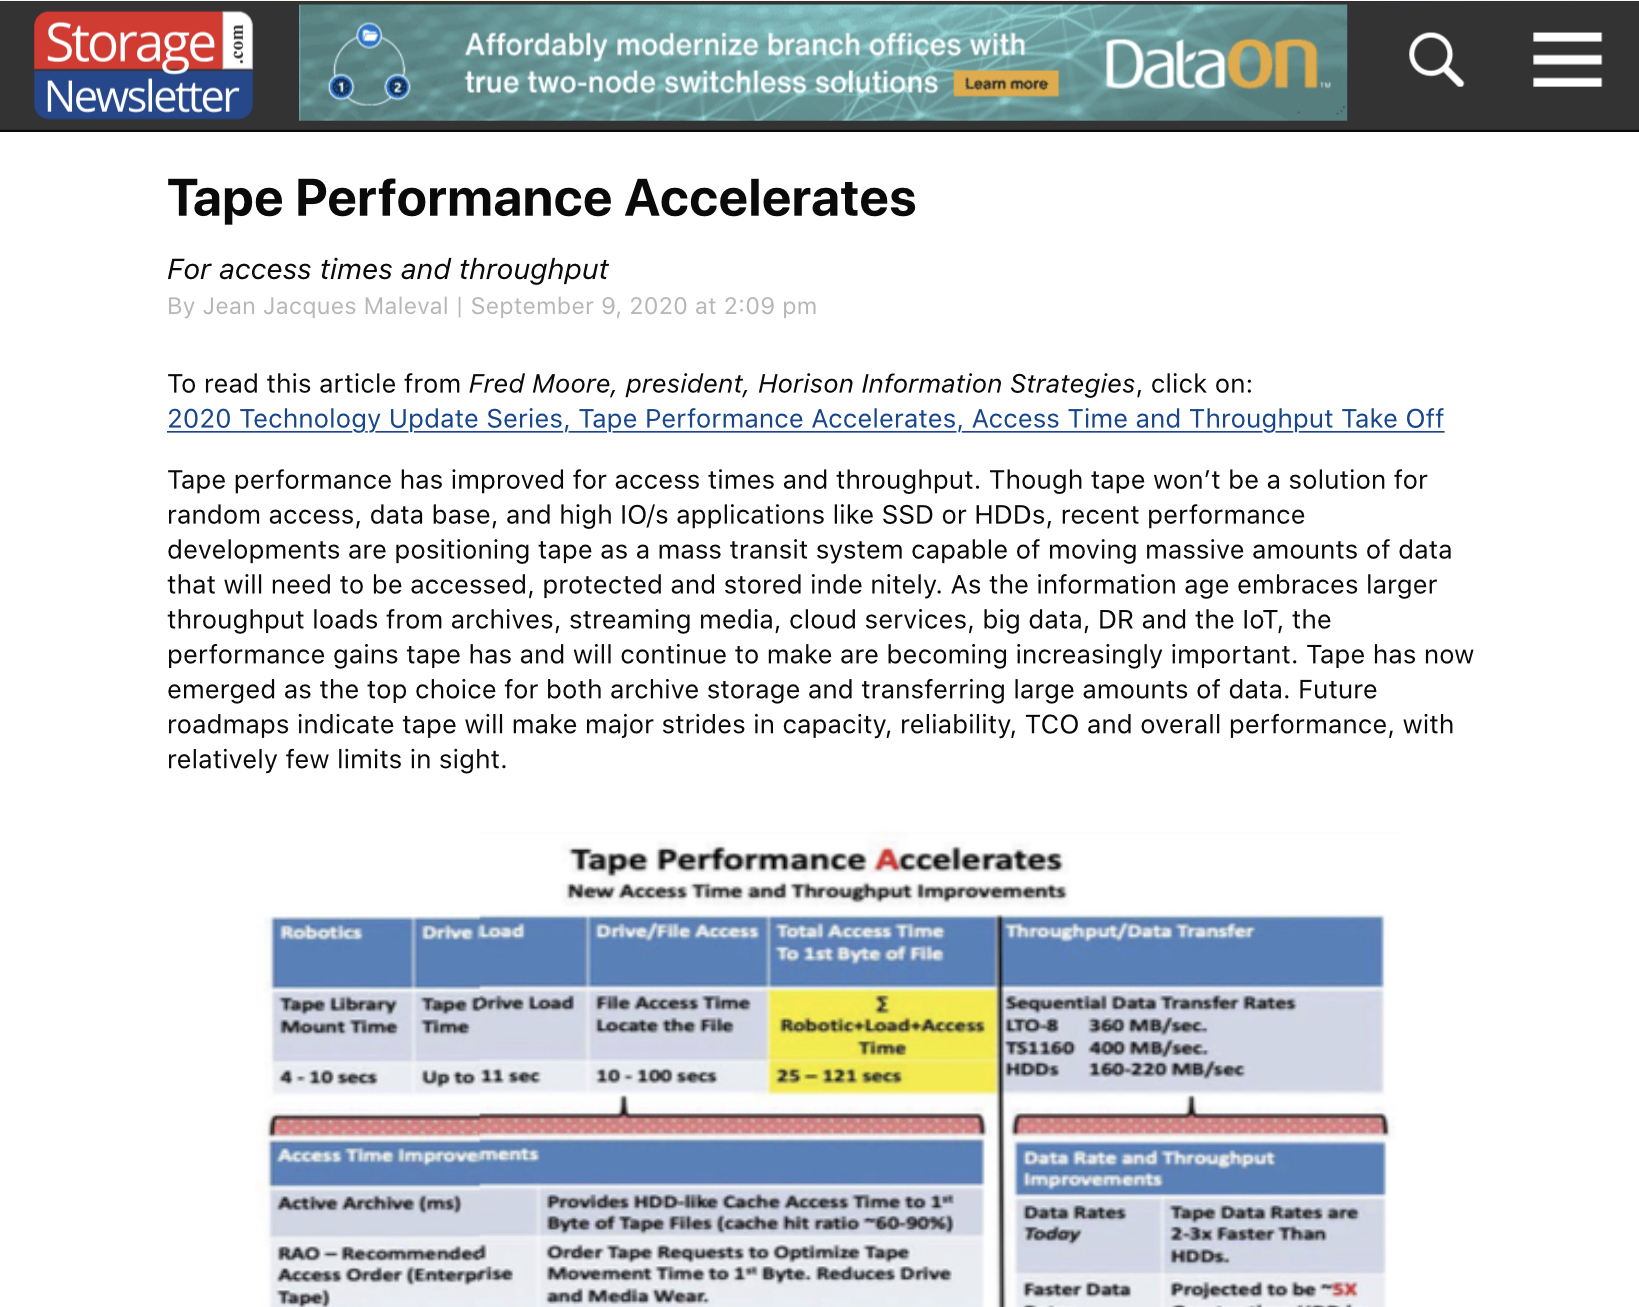 Tape Performance Accelerates white paper featured in Storage Newsletter